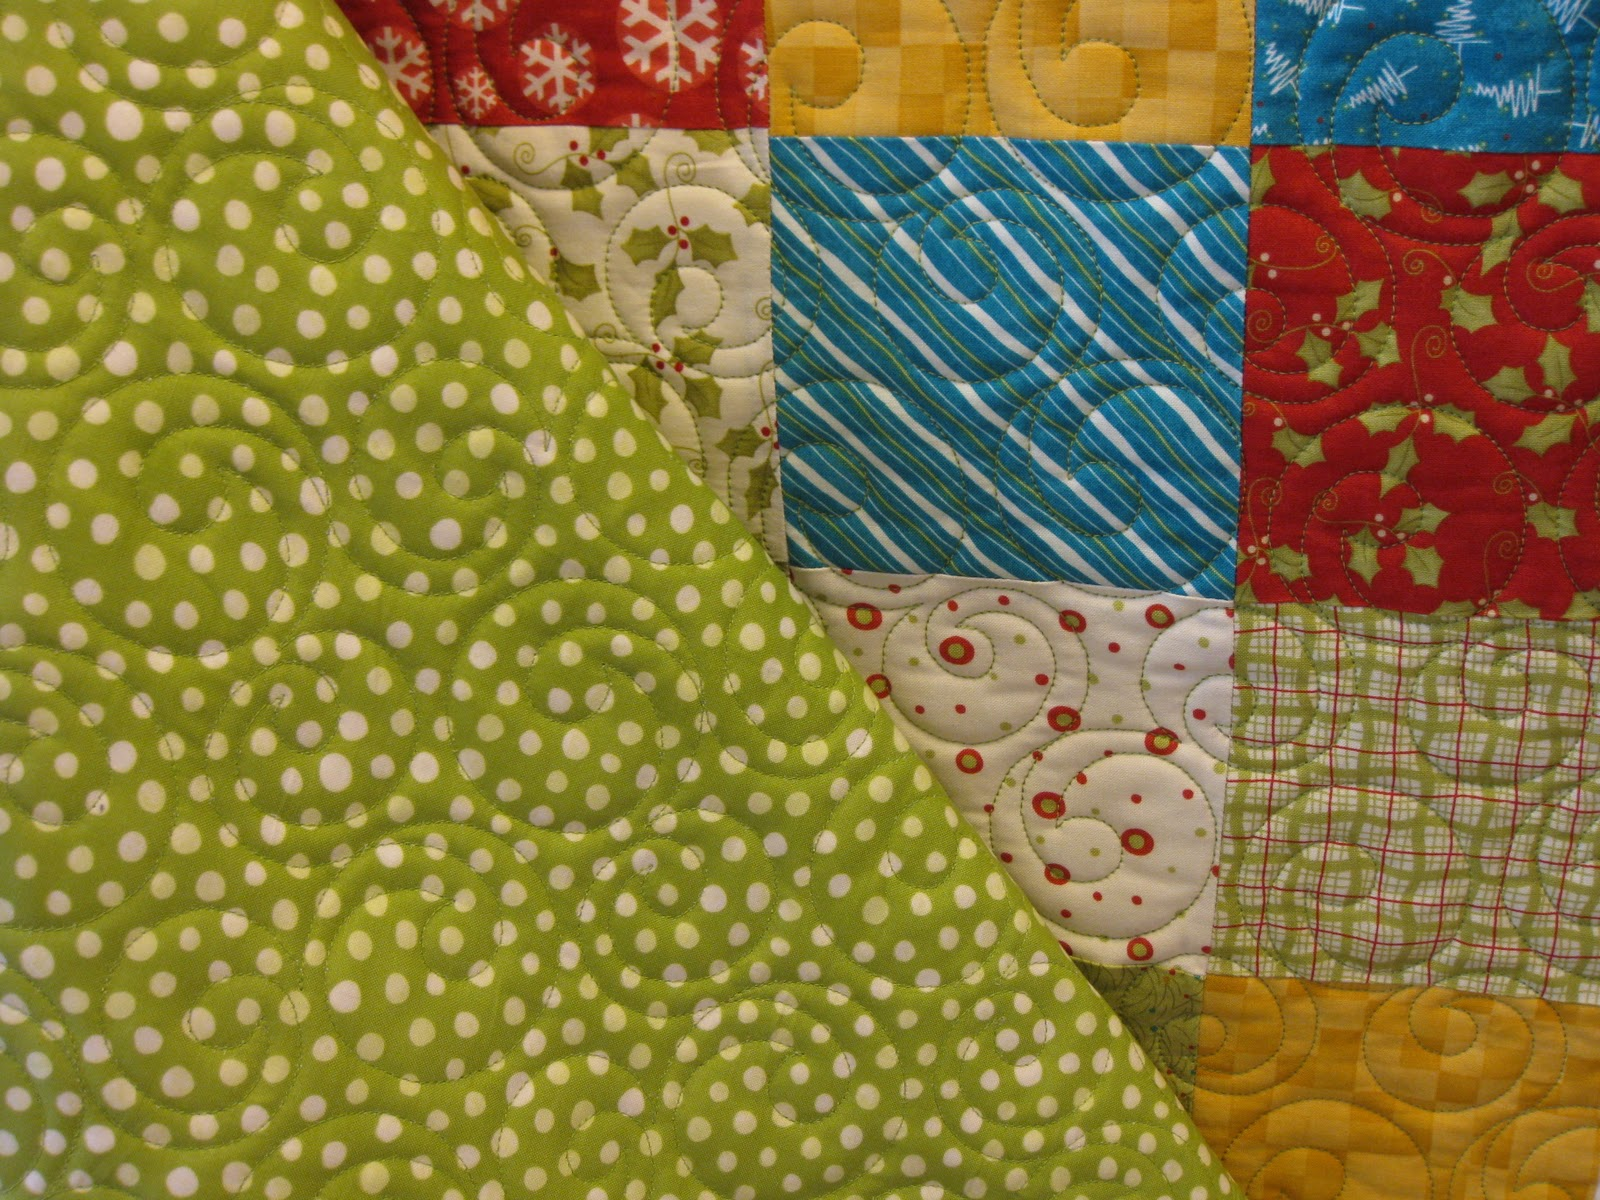 Millie S Quilting Tuesday December 21 2010